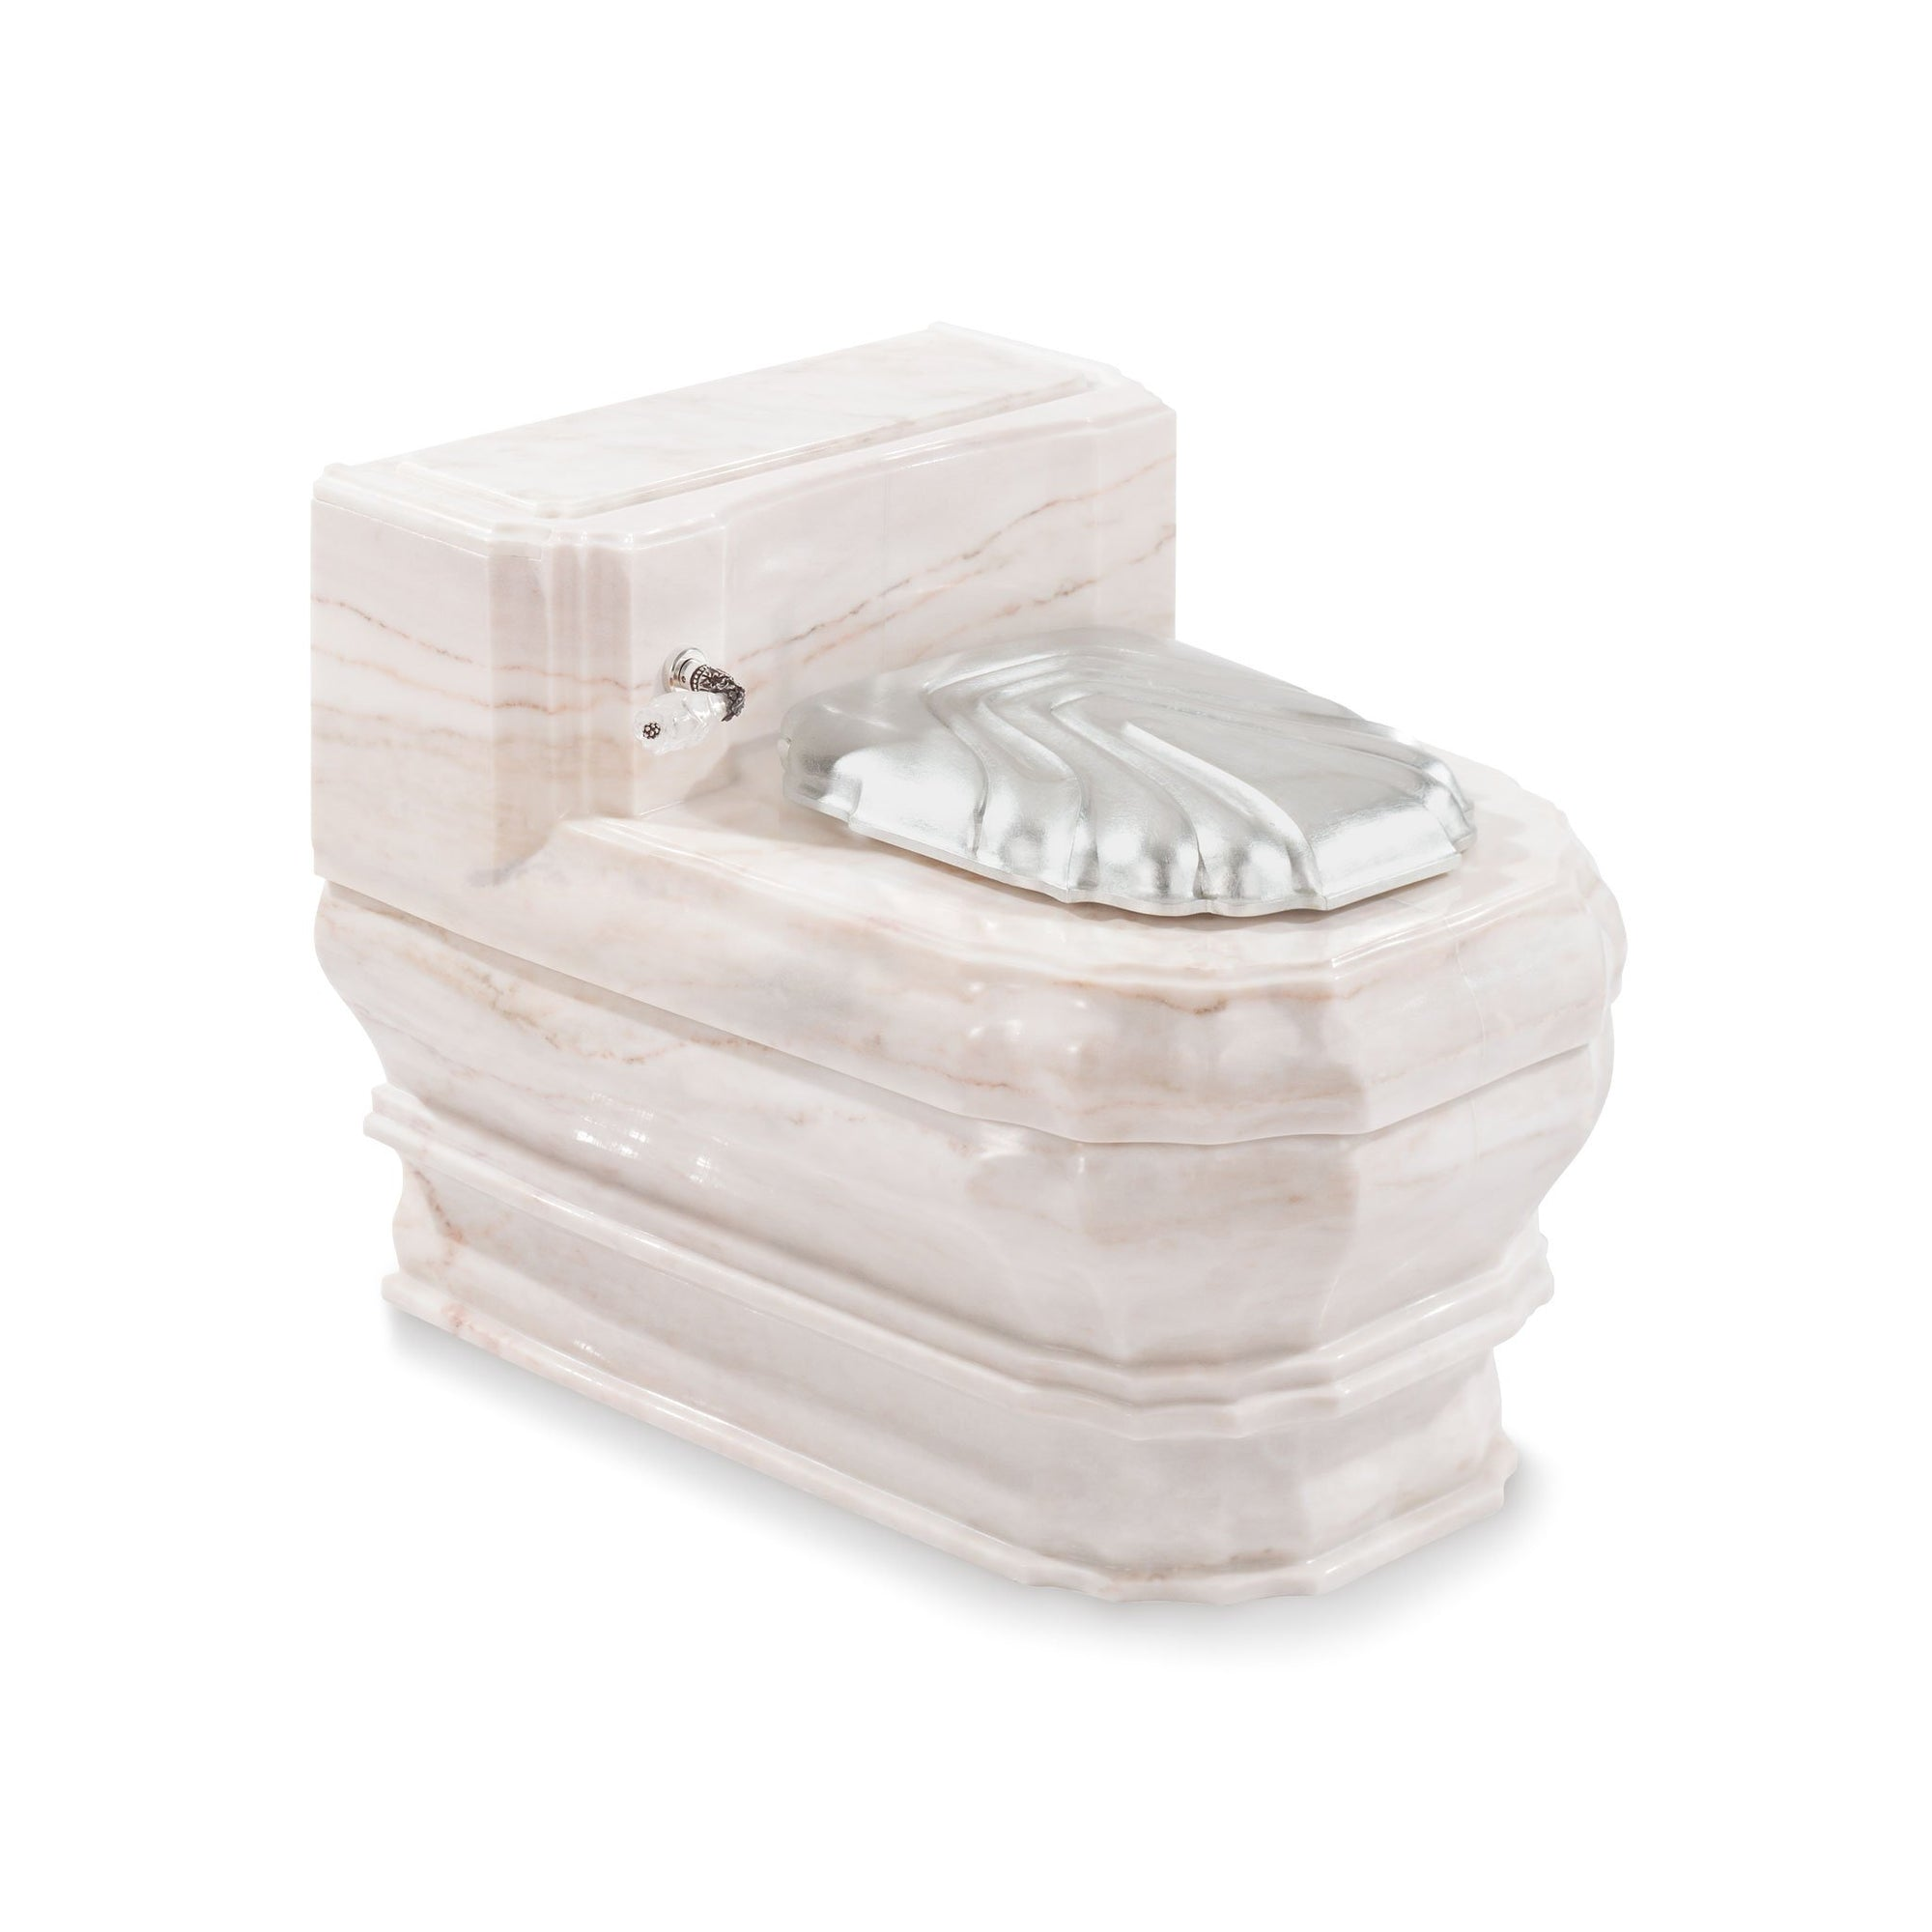 0241WC-RSAU Sherle Wagner International Rose Aurora Georgian Toilet Casing Large